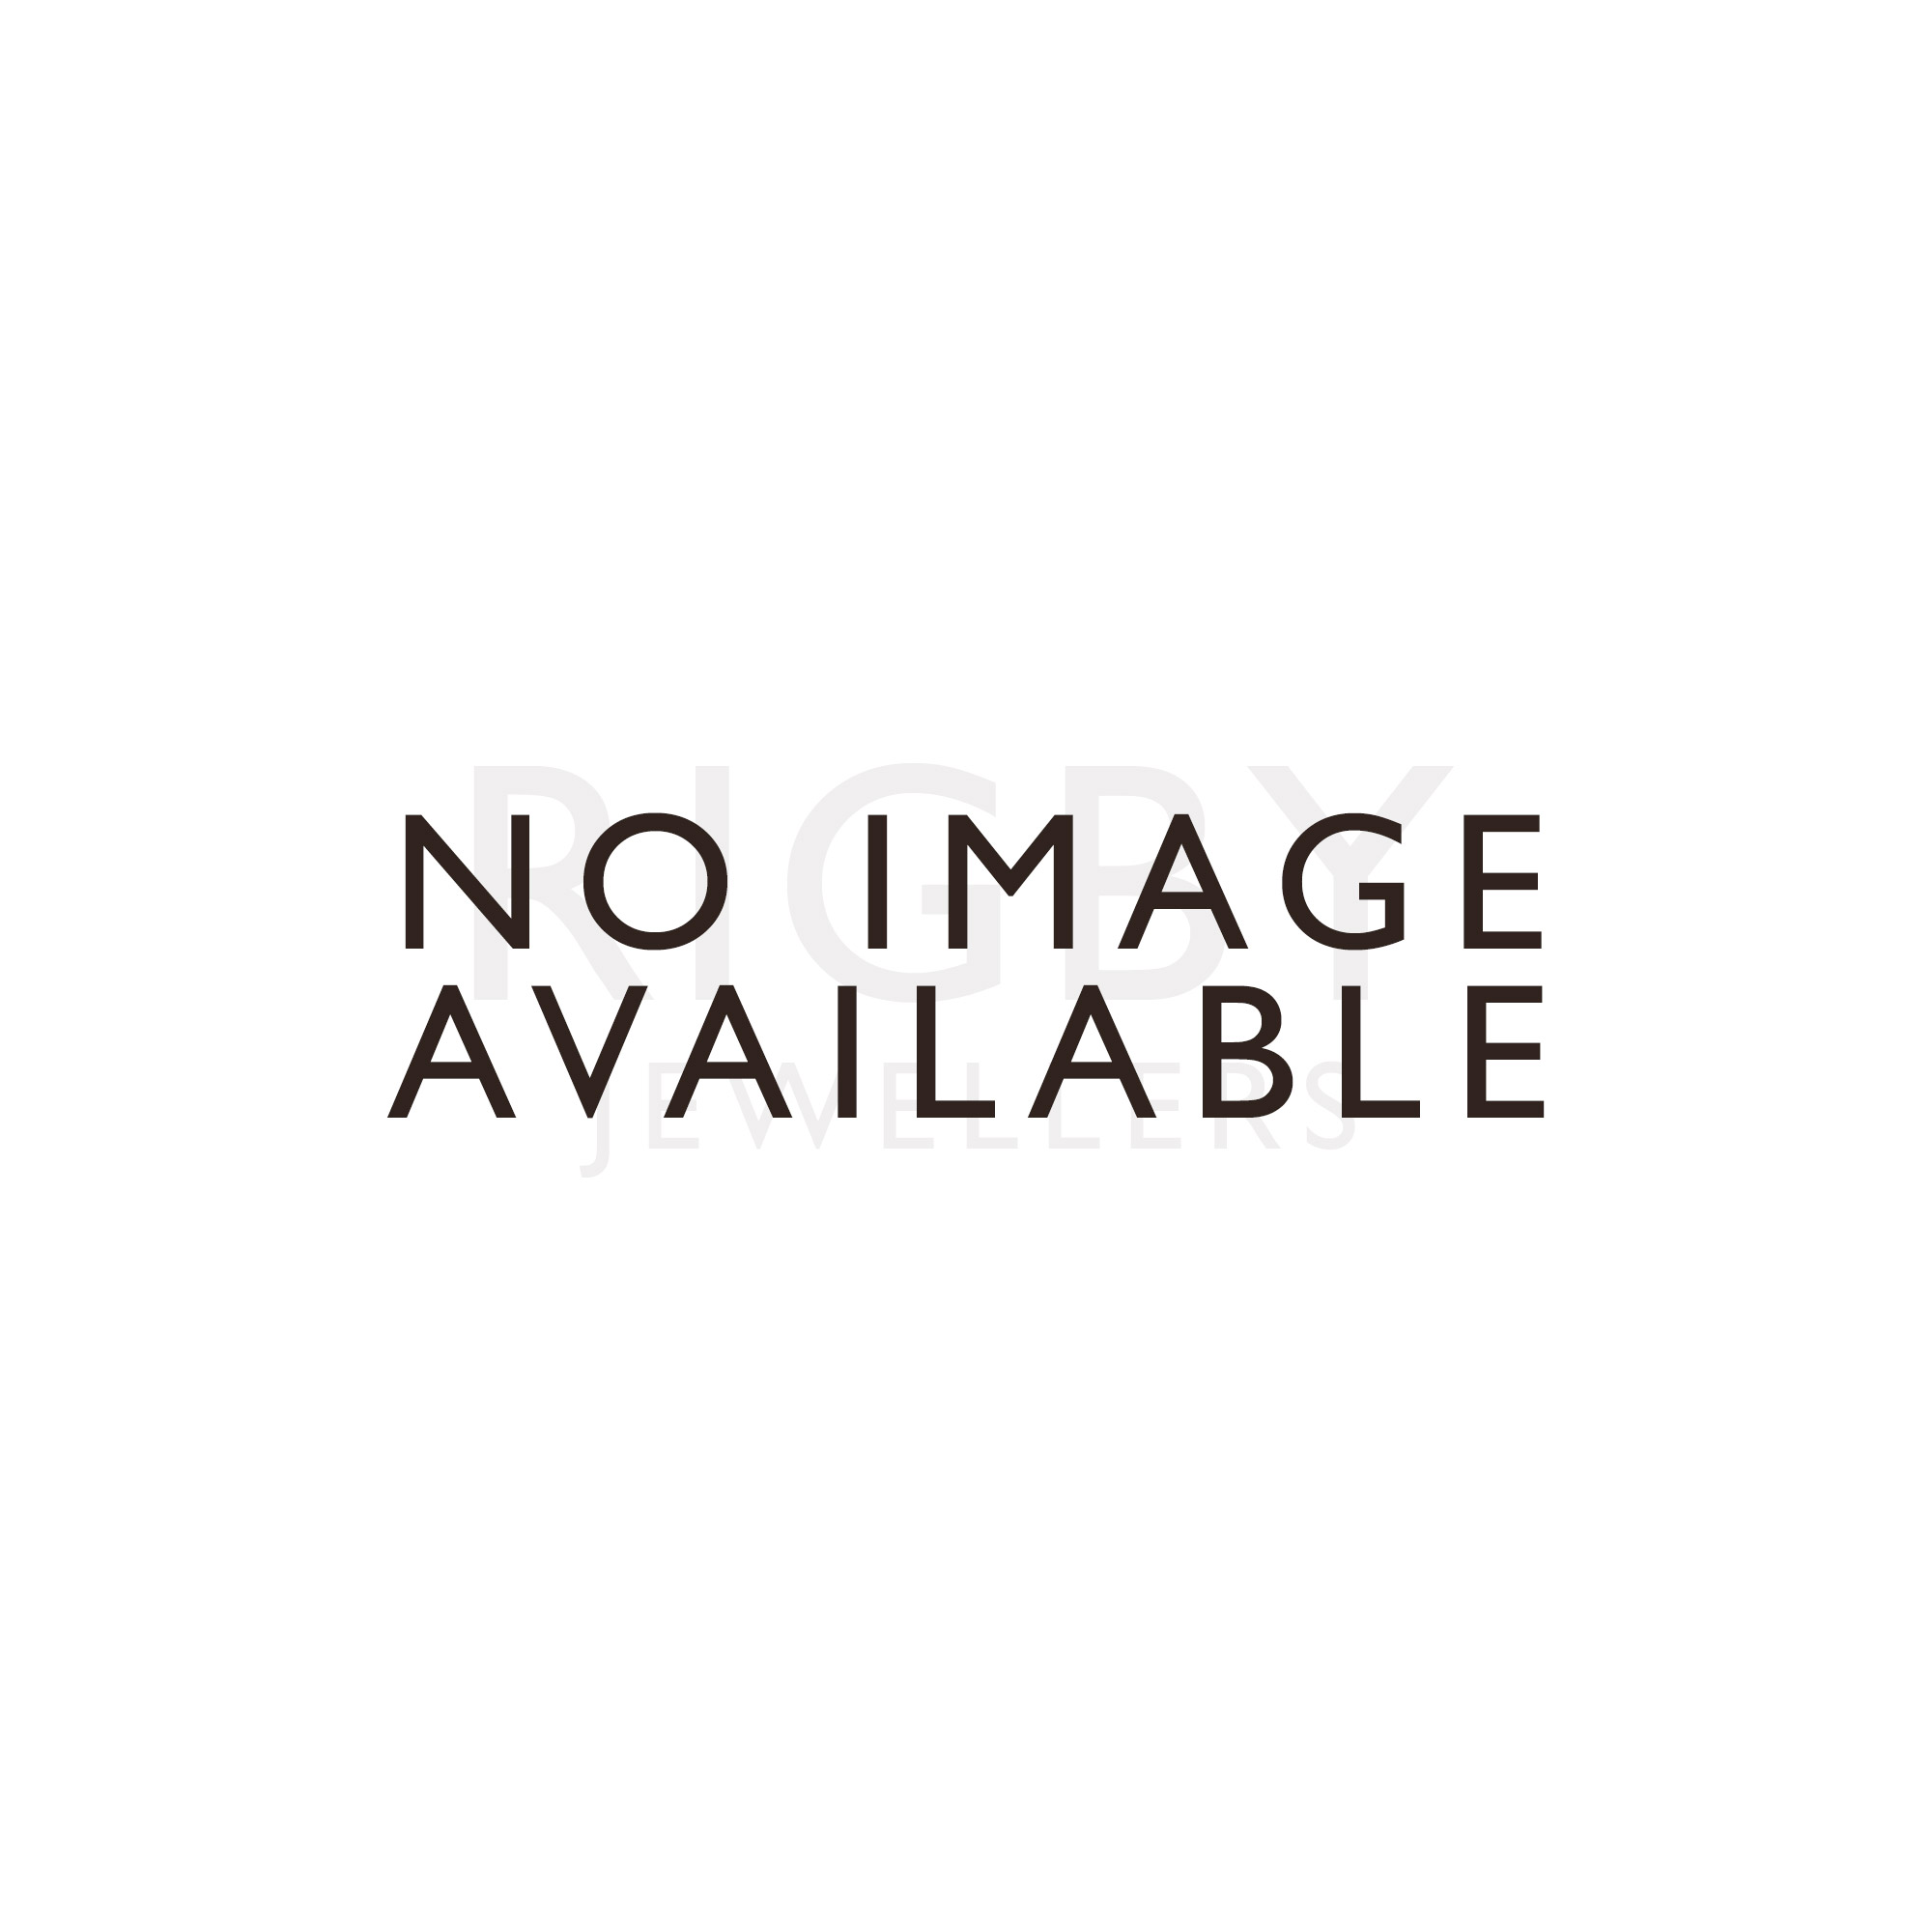 Woodford round Wooden Barometer 1615